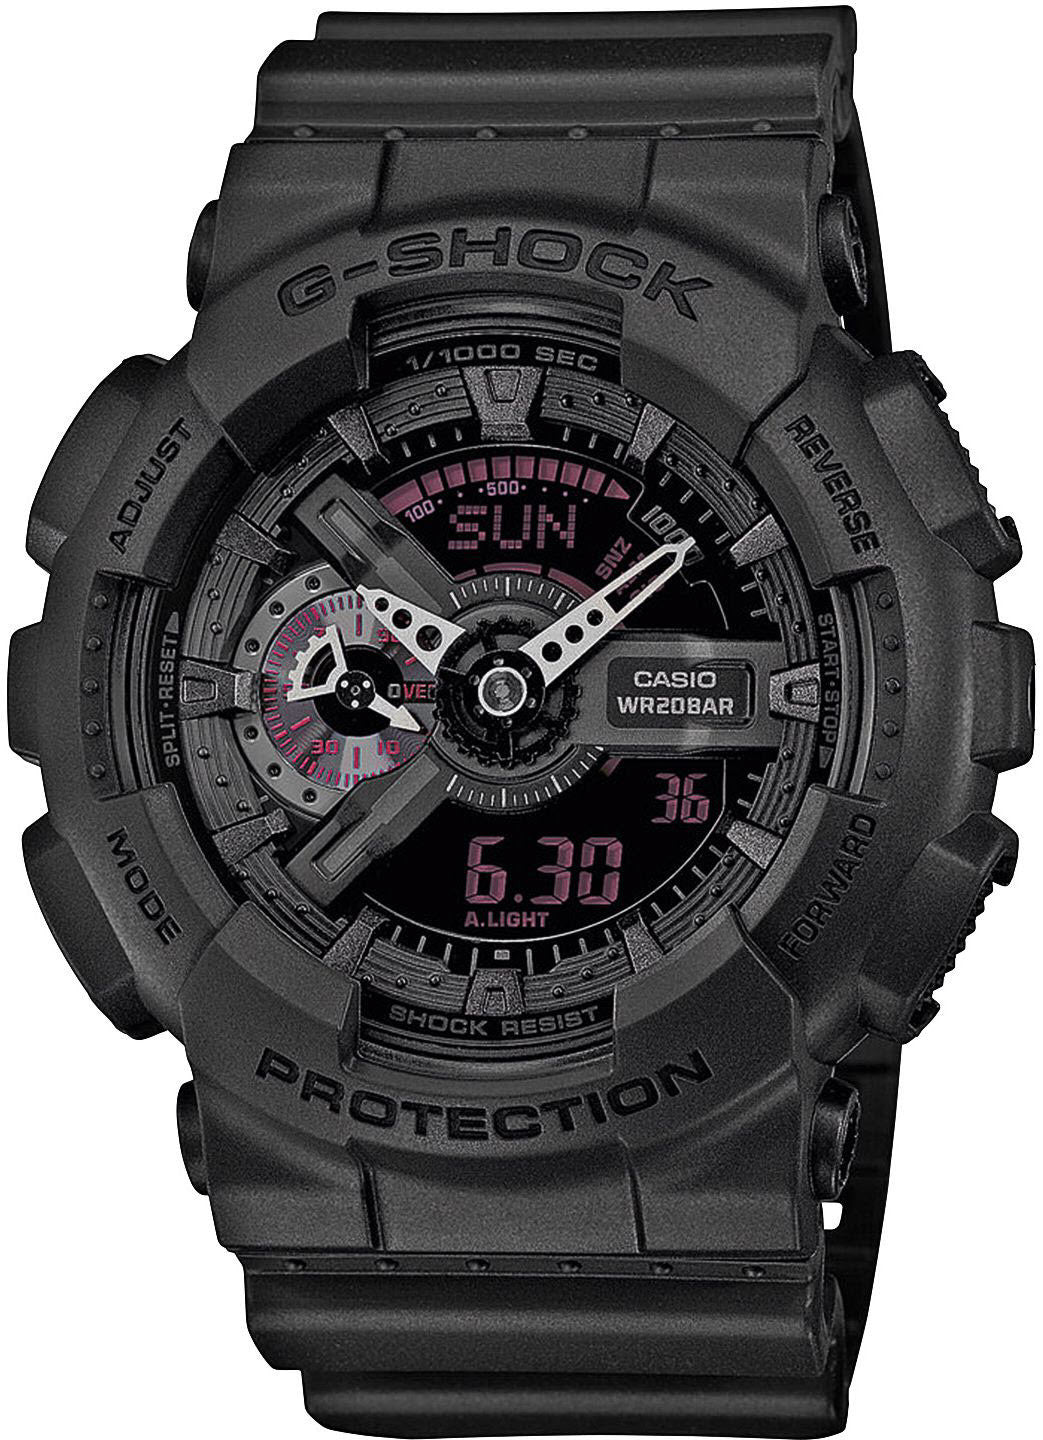 G-Shock Watch Big Case Limited Edition